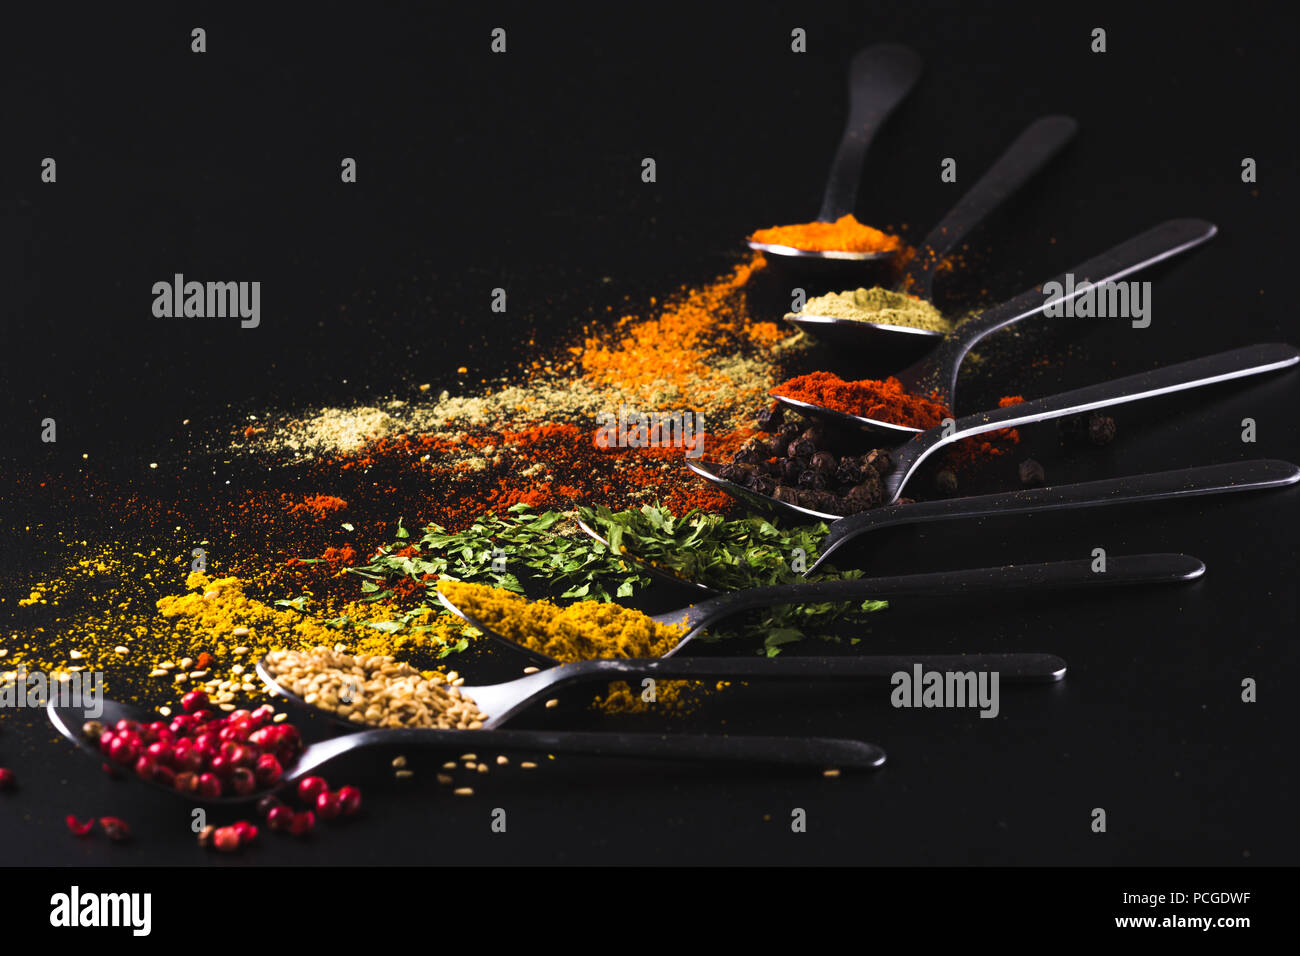 Composition of small spoons full of spices and condiments for cooking on a black background - Stock Image